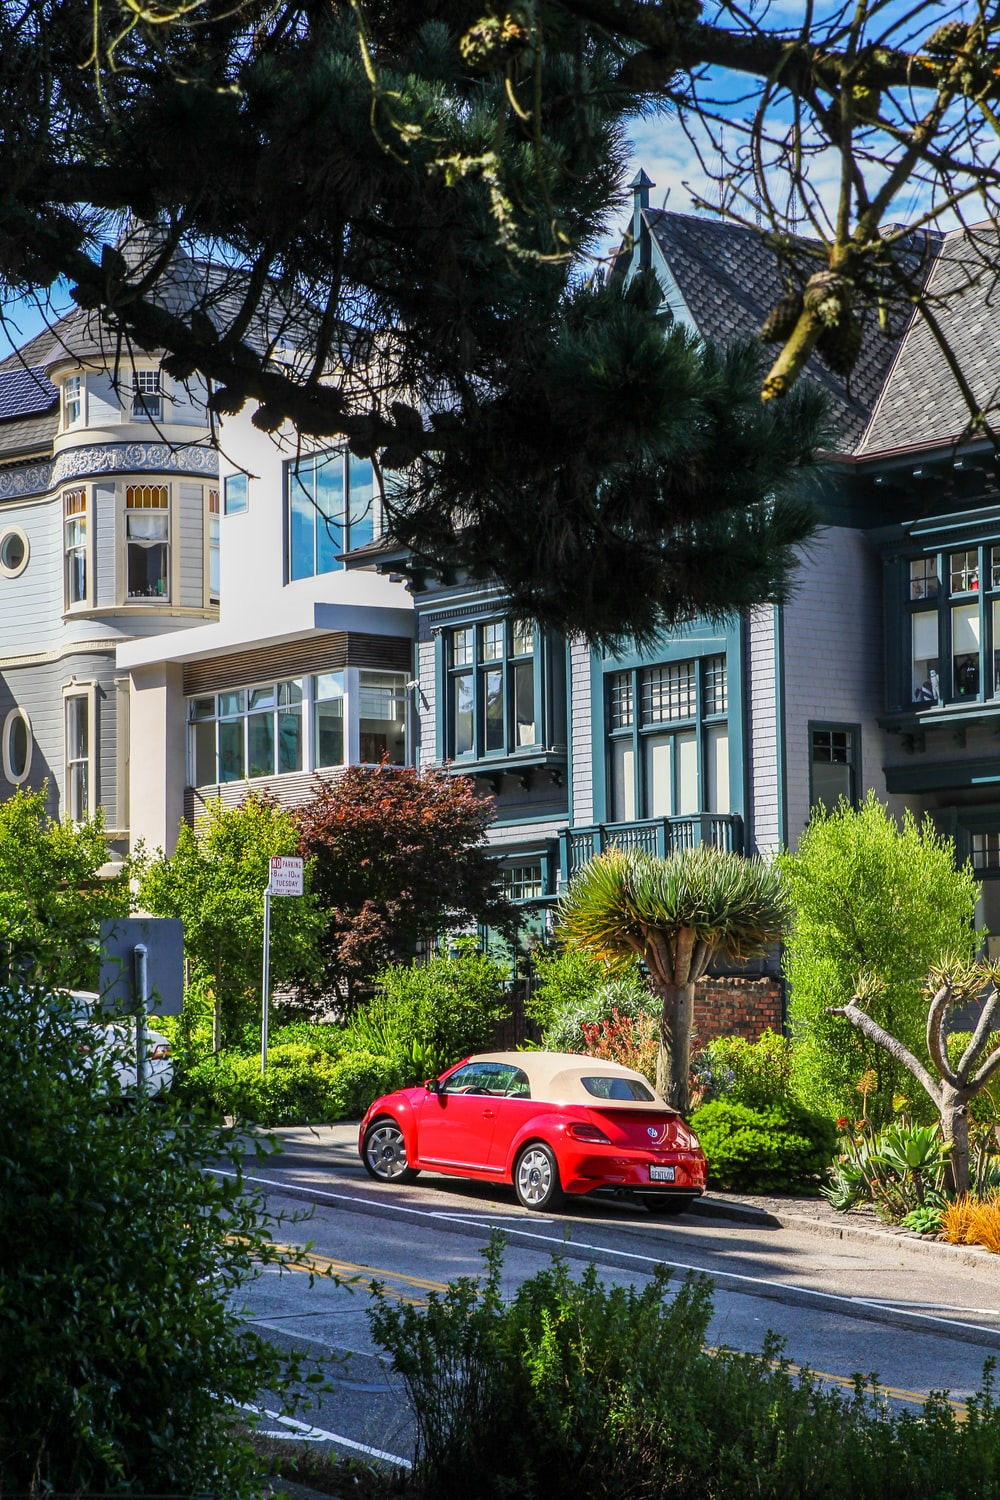 red coupe parking near house during daytime